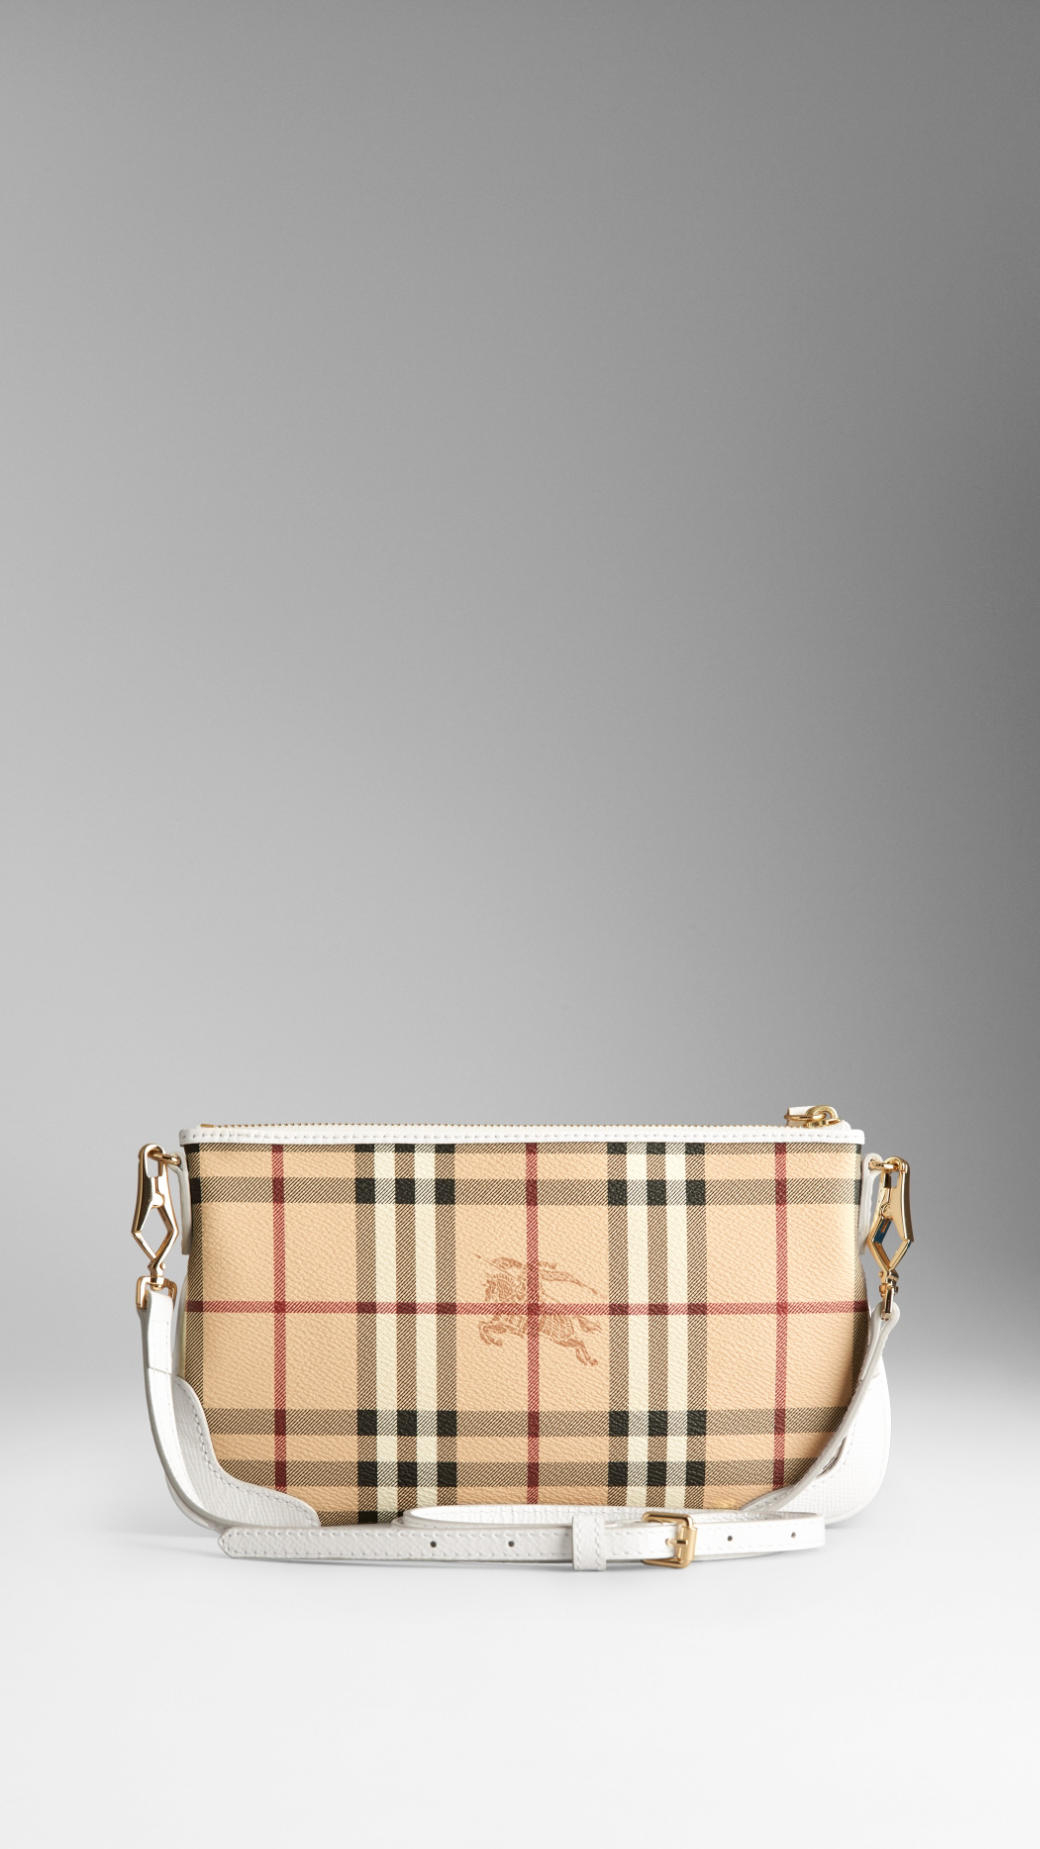 7efe89a9fd78 Lyst - Burberry Haymarket Check Clutch Bag in White